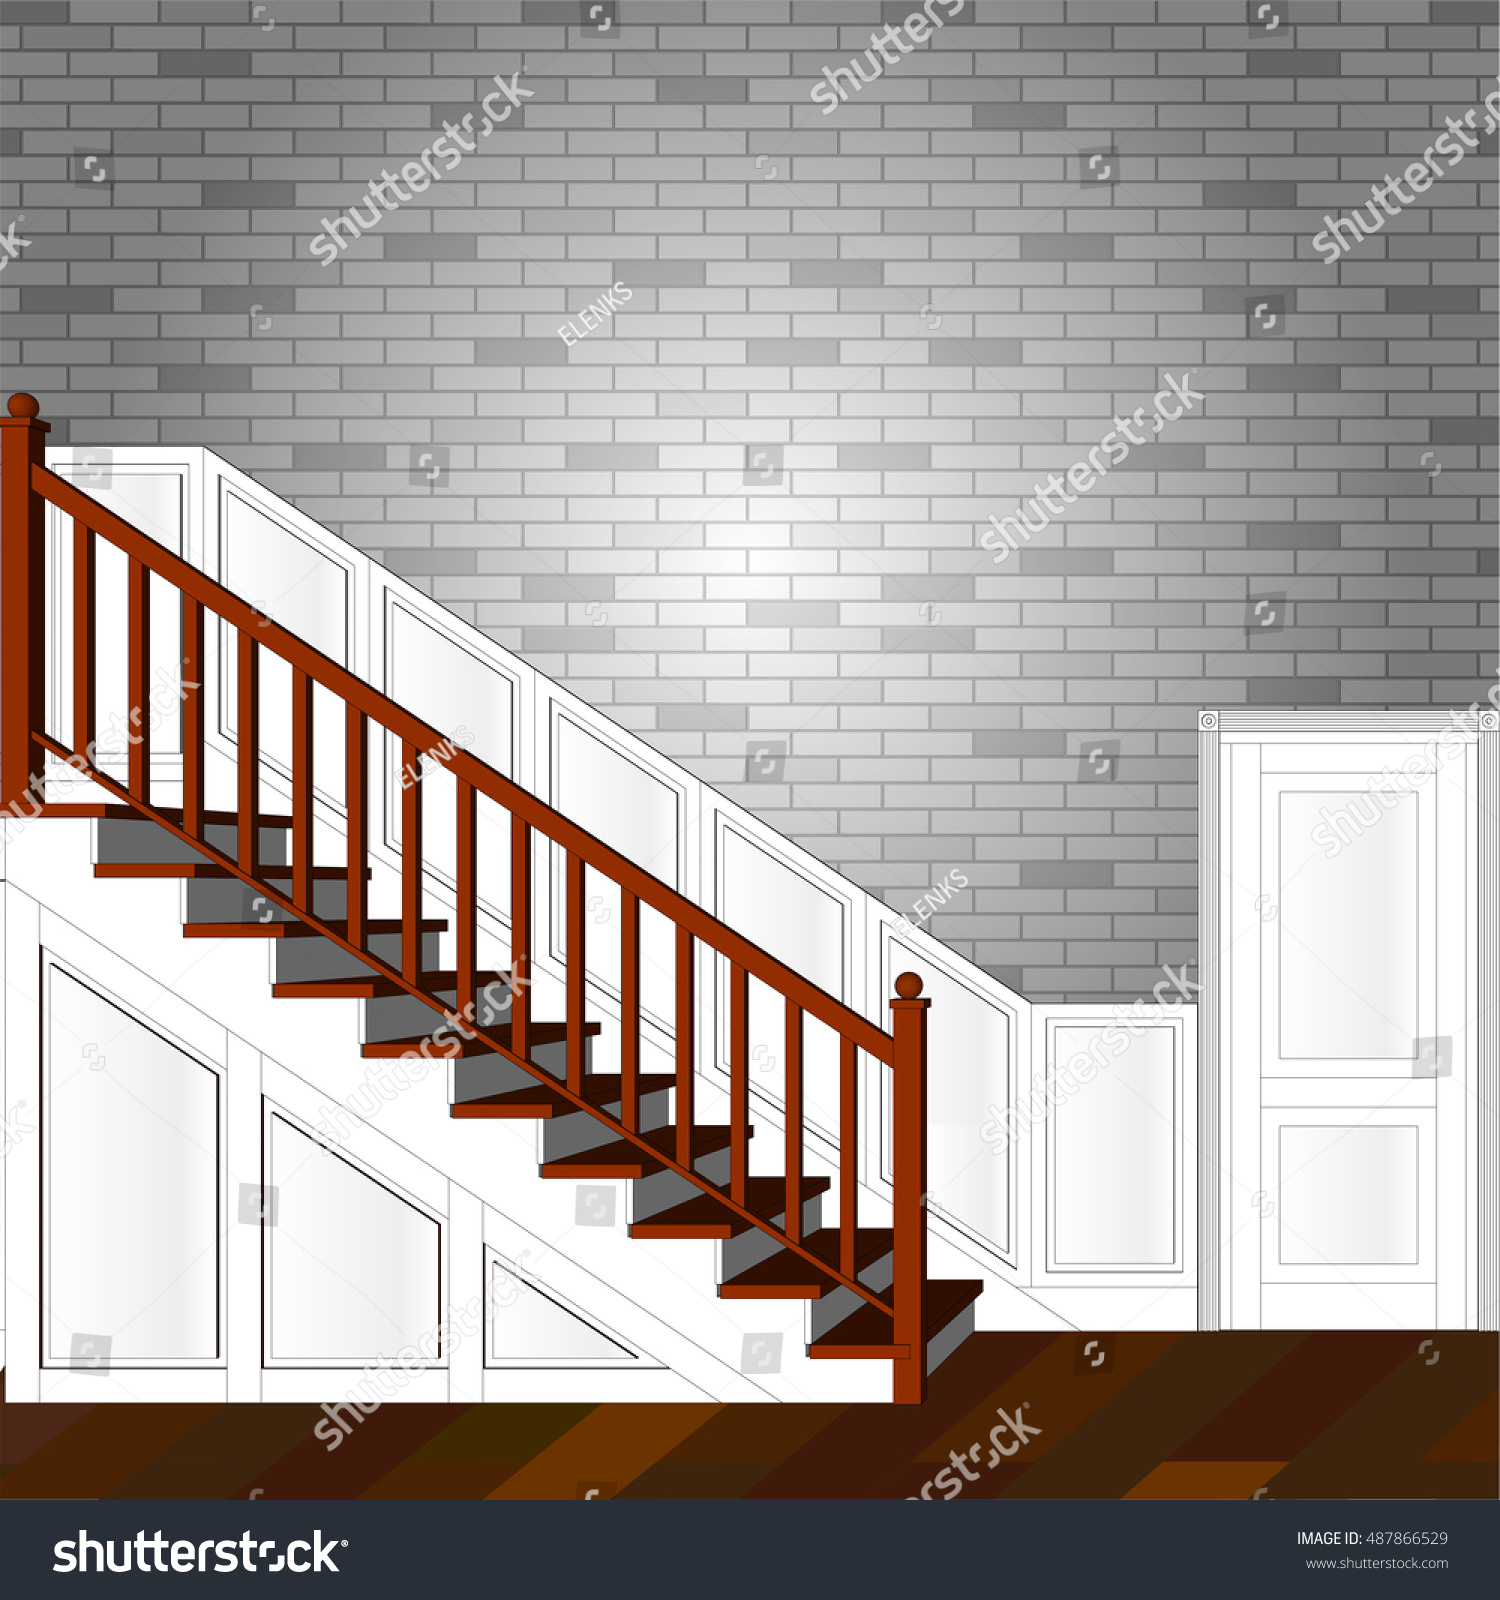 Stair Wooden With White Panels And The Door Closed. Gray Brick Wall And  Wood Floor